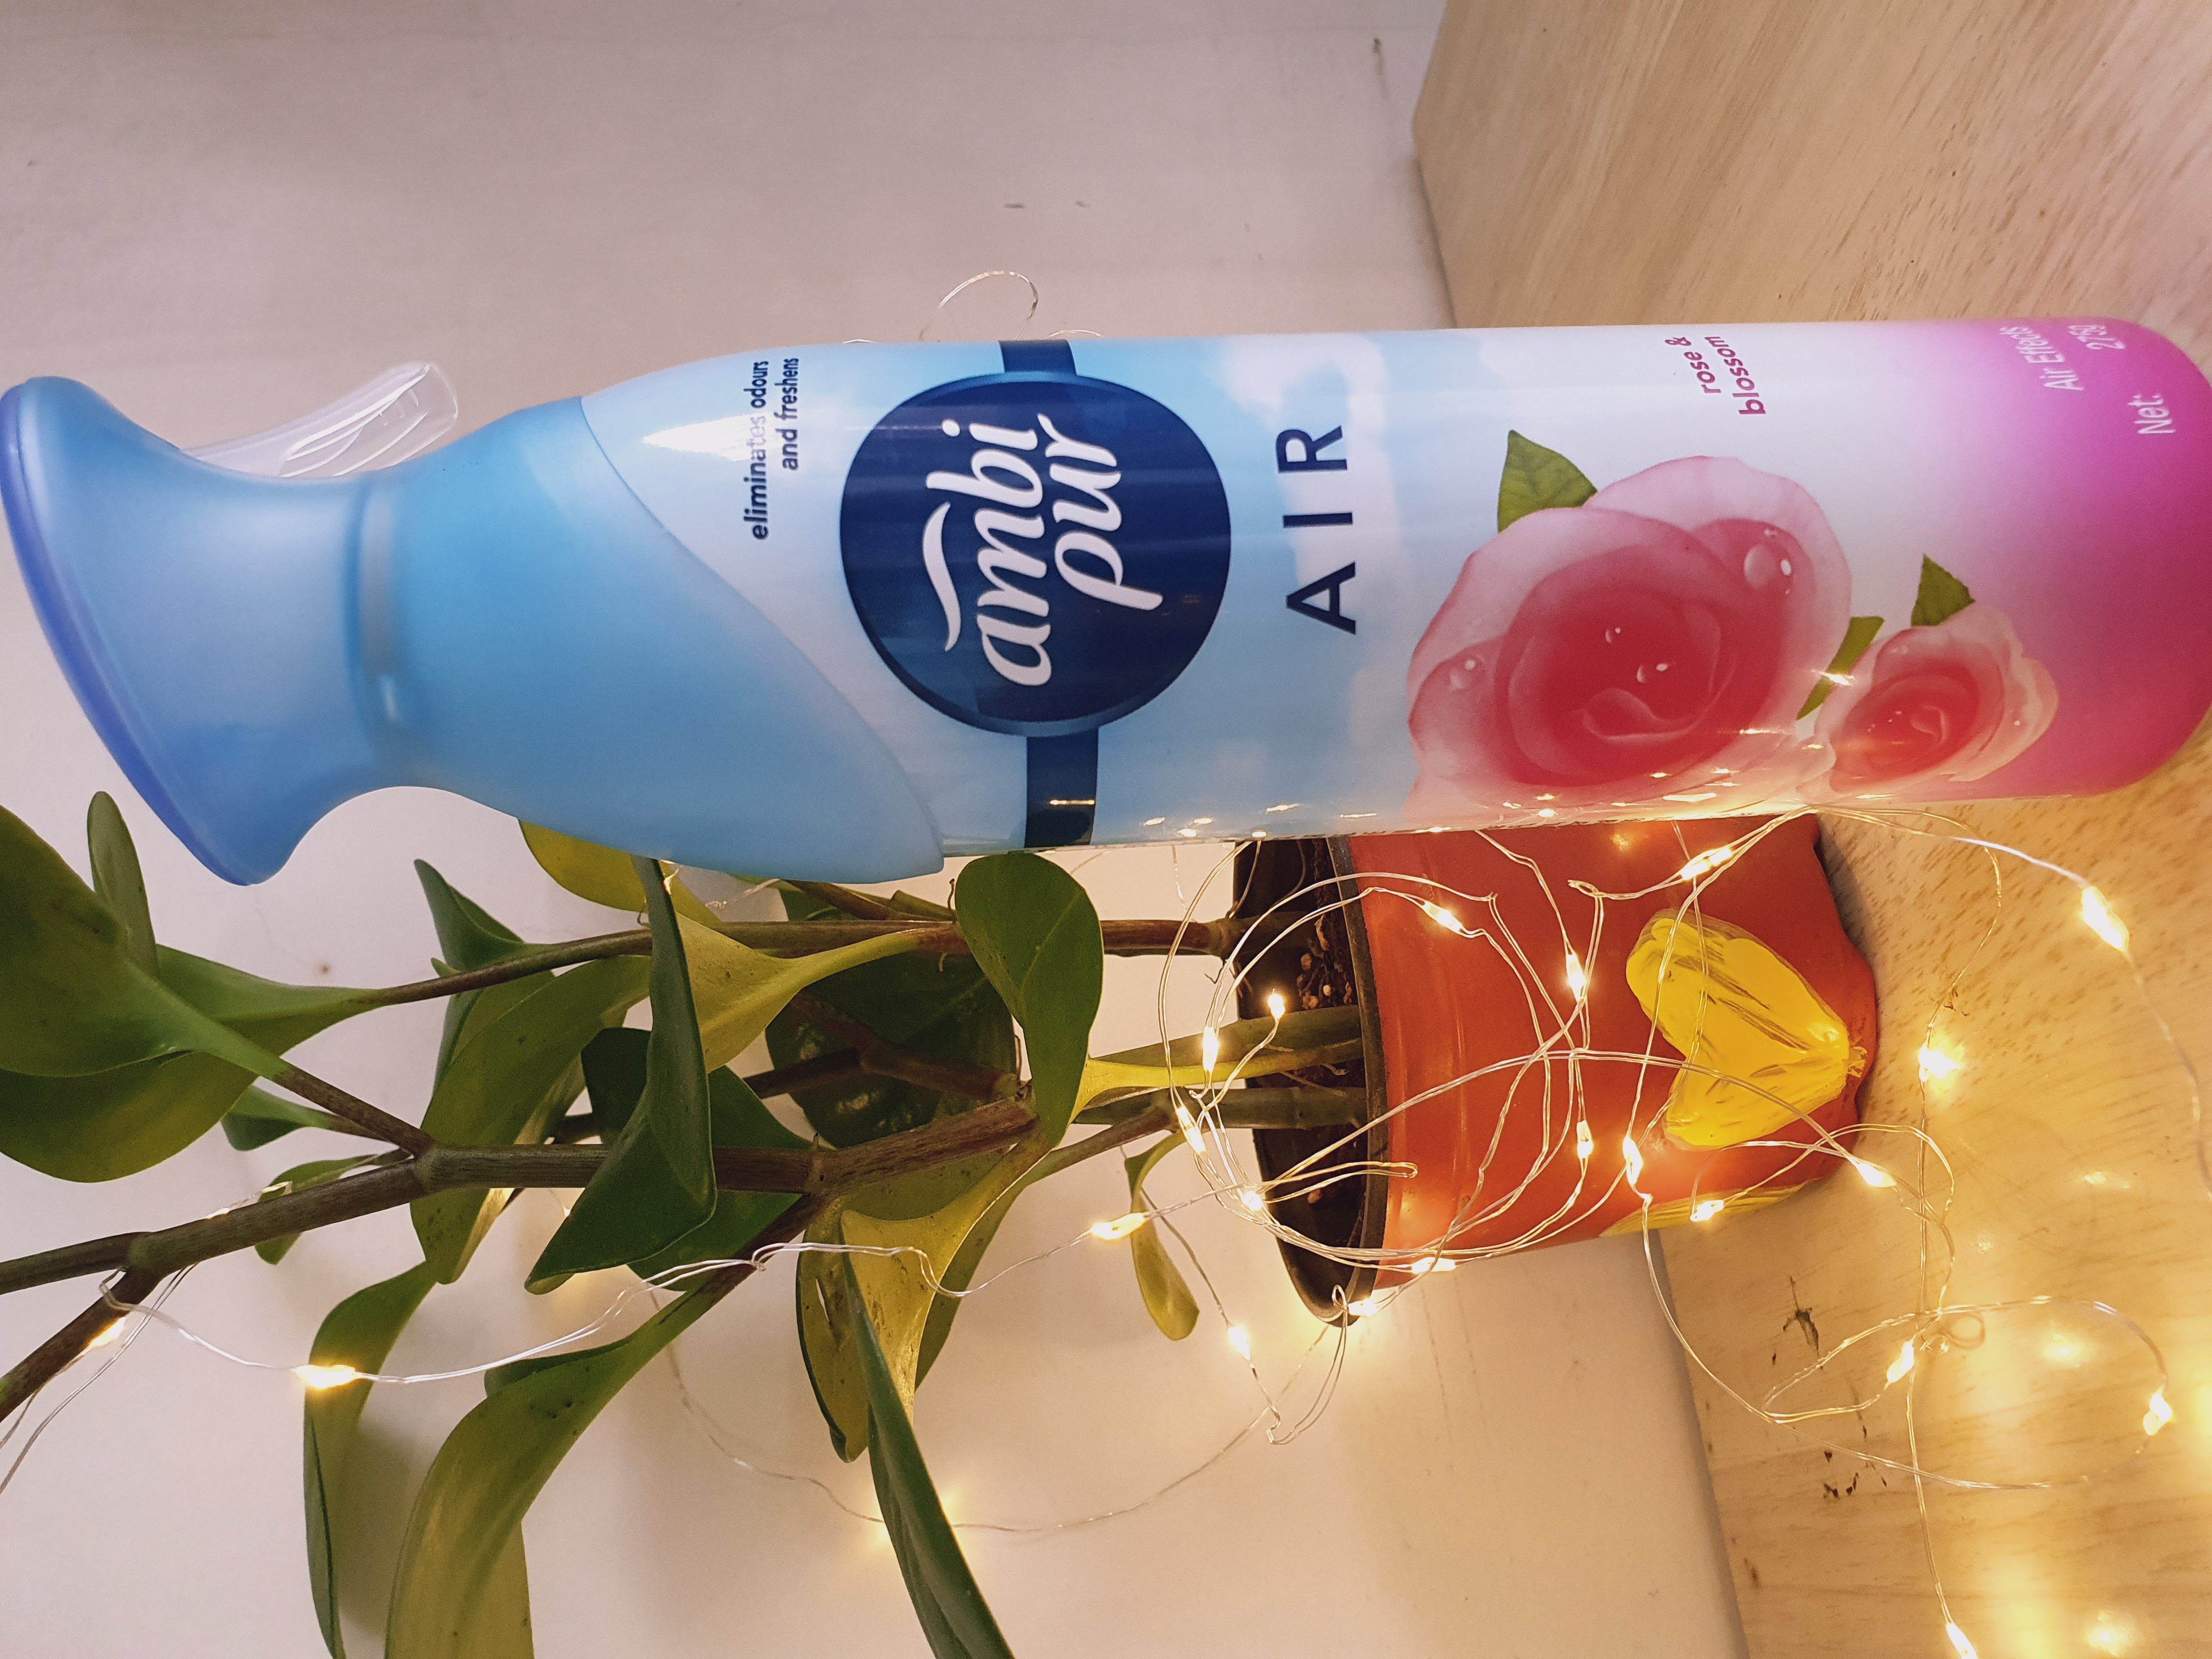 Ambi Pur Air Freshener – Rose and Blossom pic 2-Mild, Fresh and beautiful-By jyoti_s